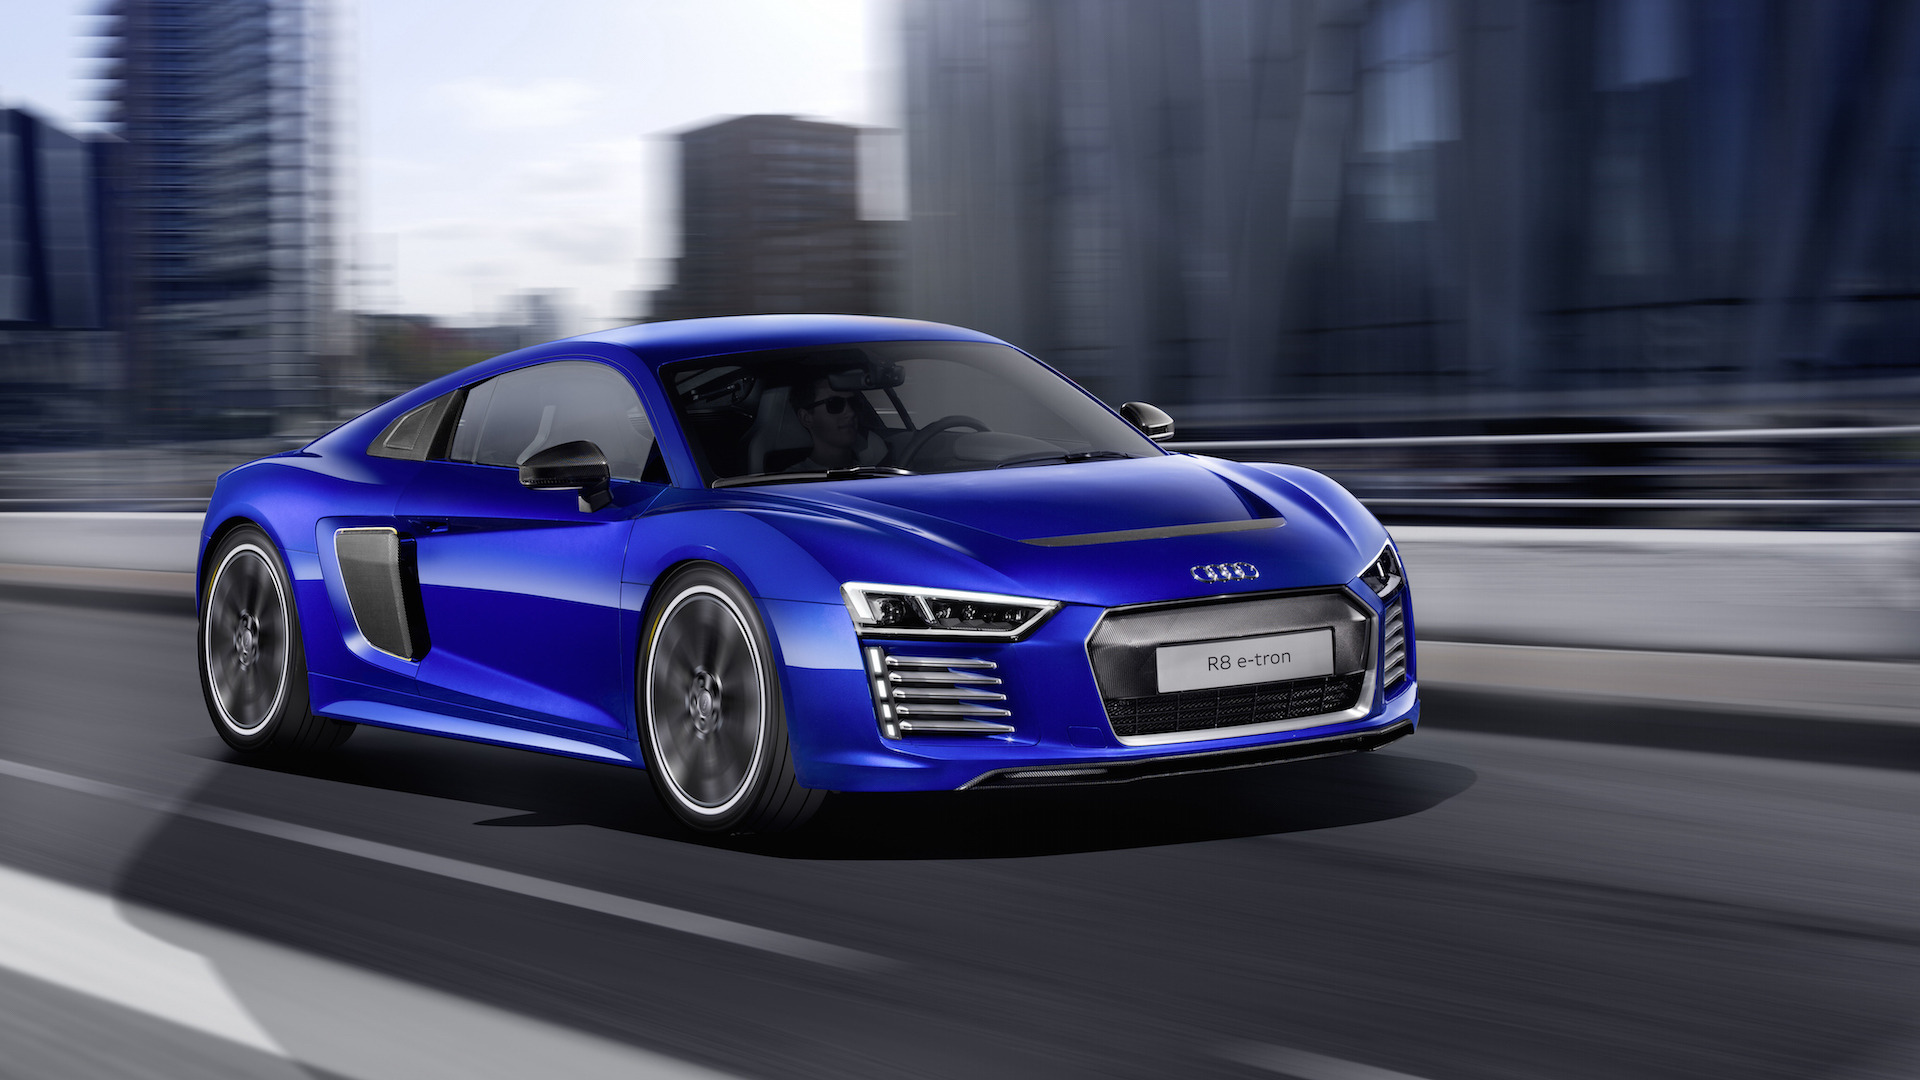 64 All New 2020 Audi R8 E Tron Redesign and Concept